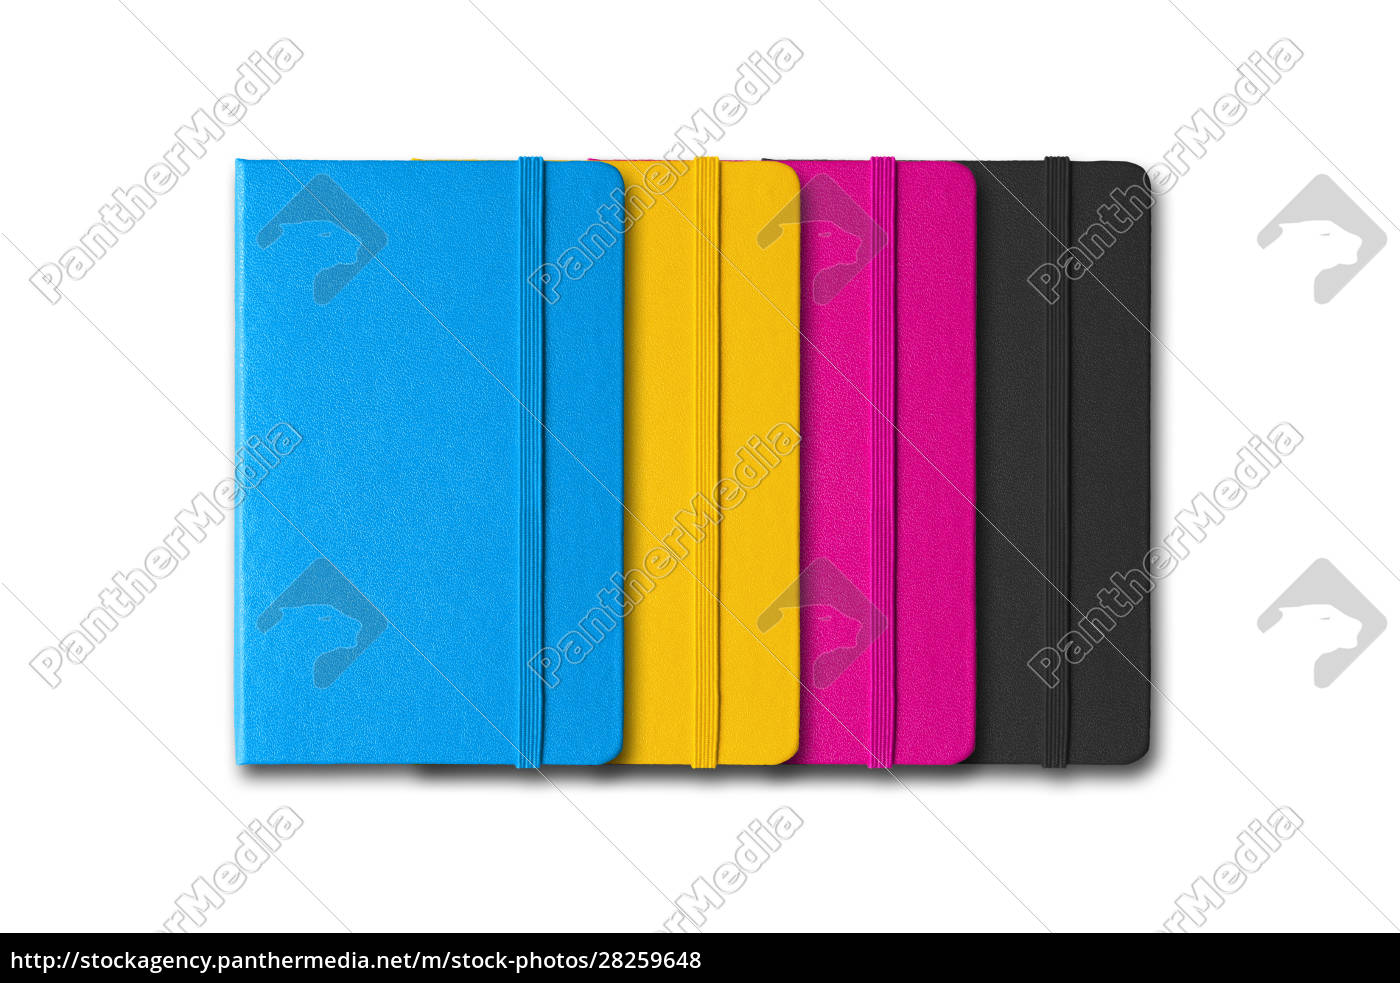 cmyk, closed, notebooks, set - 28259648